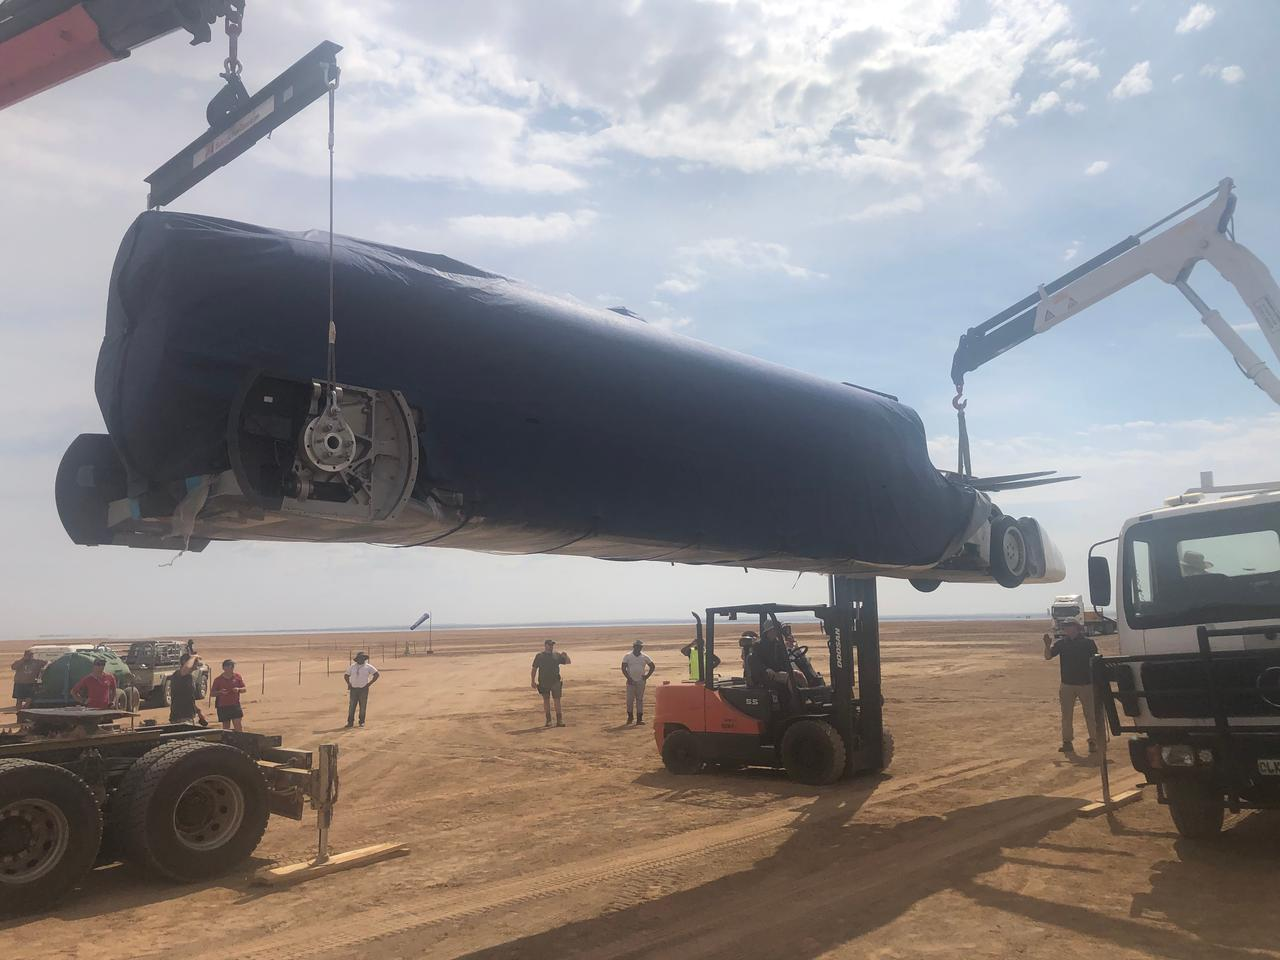 The Bloodhound LSR supersonic car is lowered onto the desert in Northern Cape, South Africa